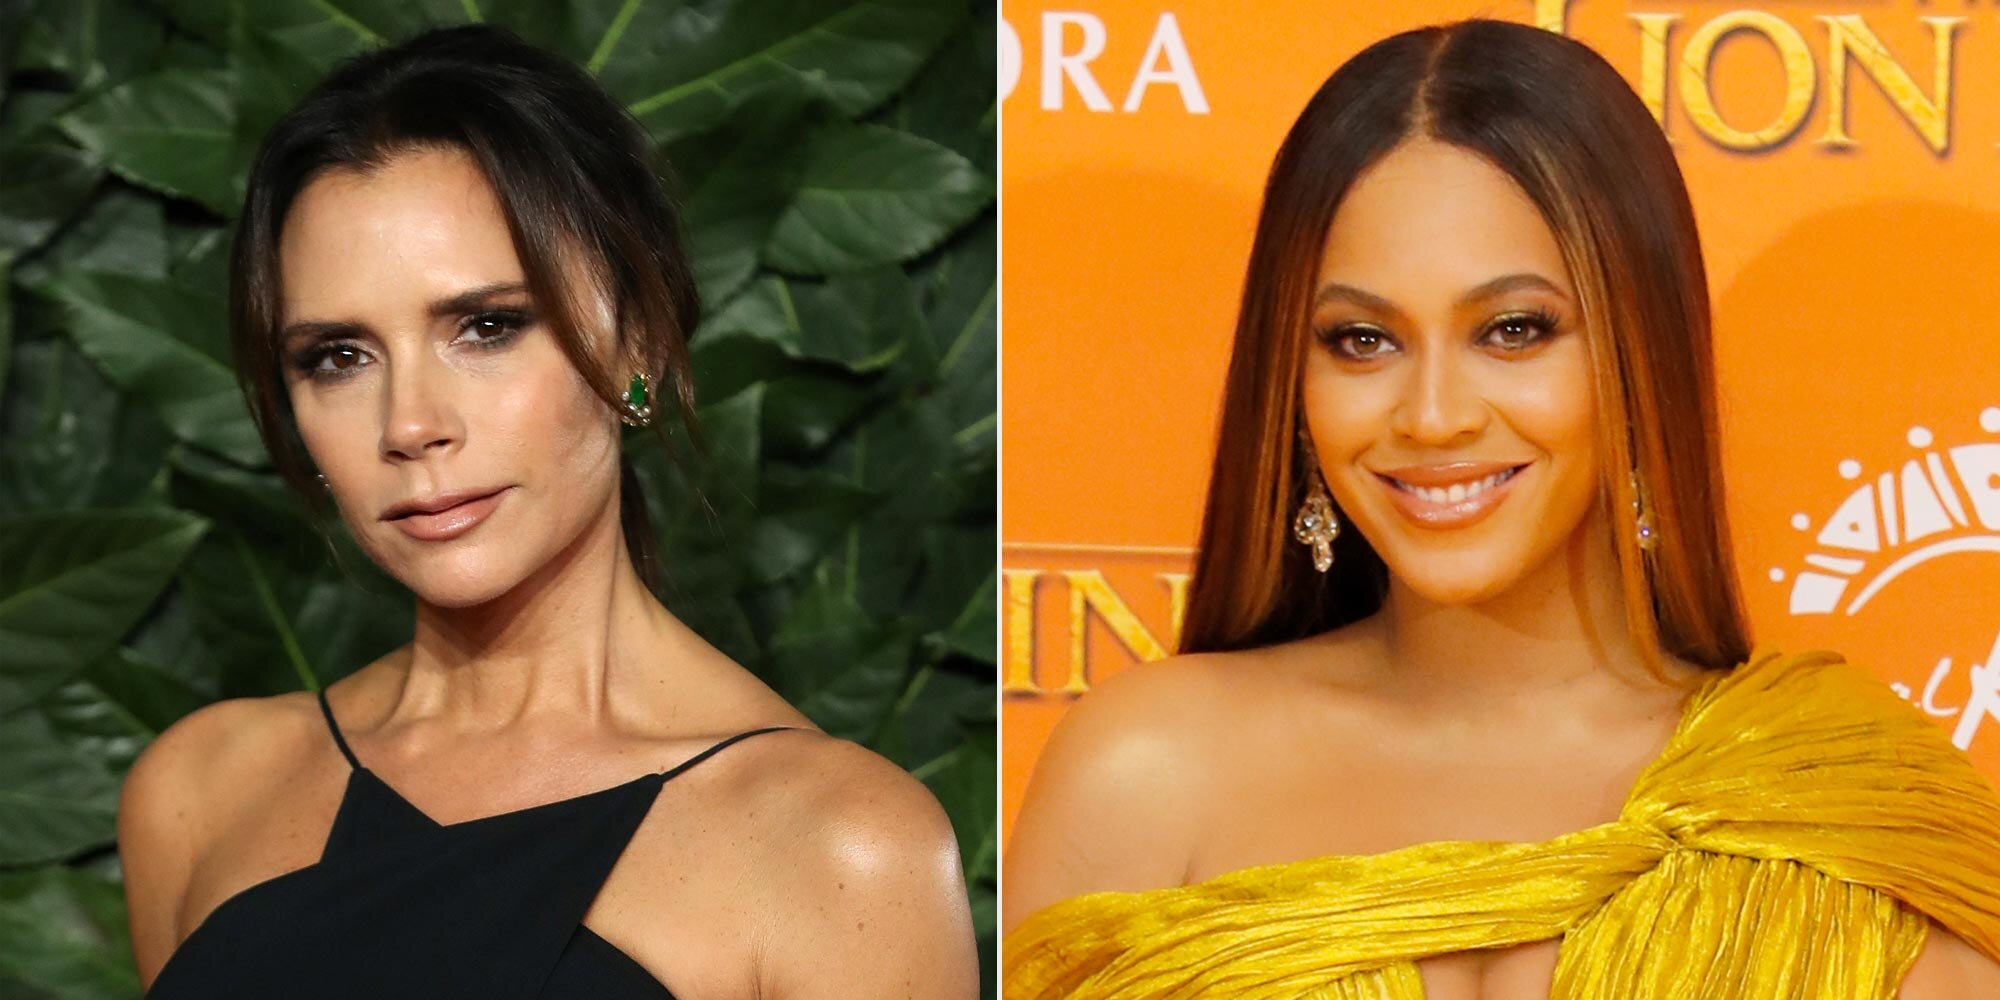 Victoria Beckham says Beyoncé told her the Spice Girls' girl power inspired her career.jpg